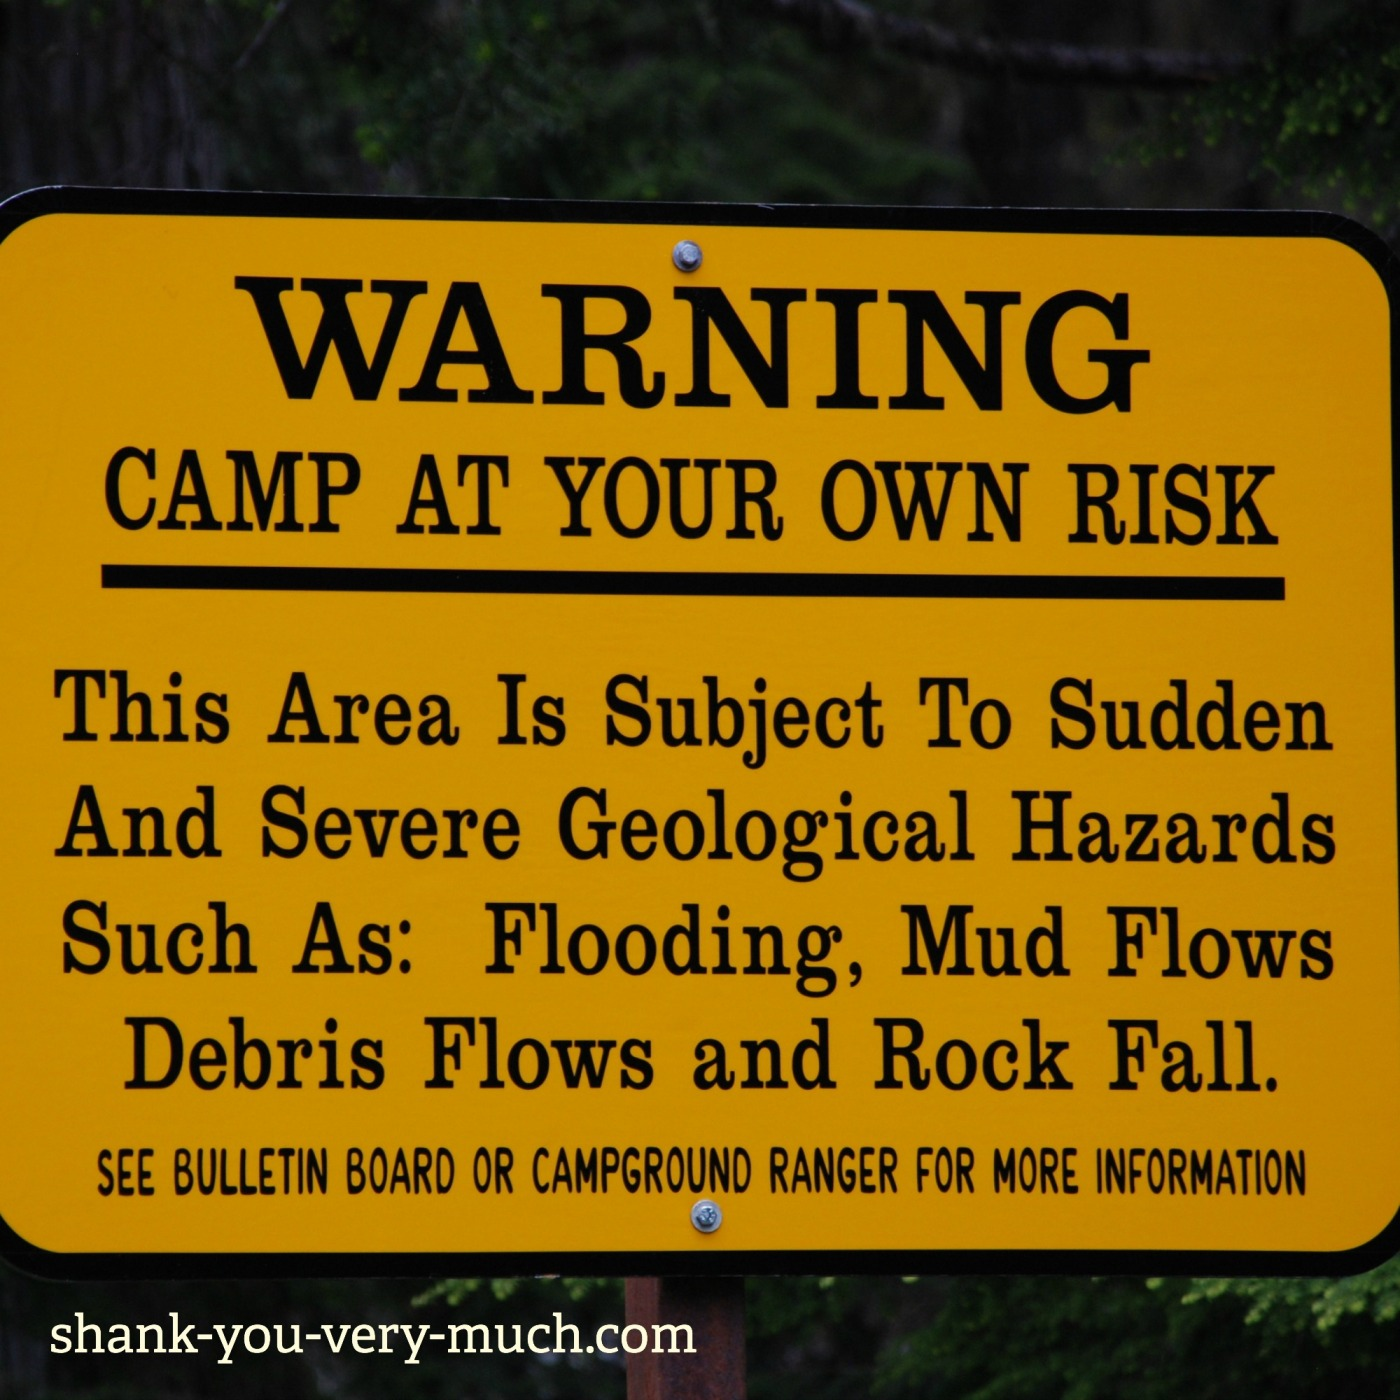 """A warning sign that says """" Camp at your own risk. This area is subject to sudden and severe geological hazards such as: flooding, mud flows, debris flows and rock fall."""""""